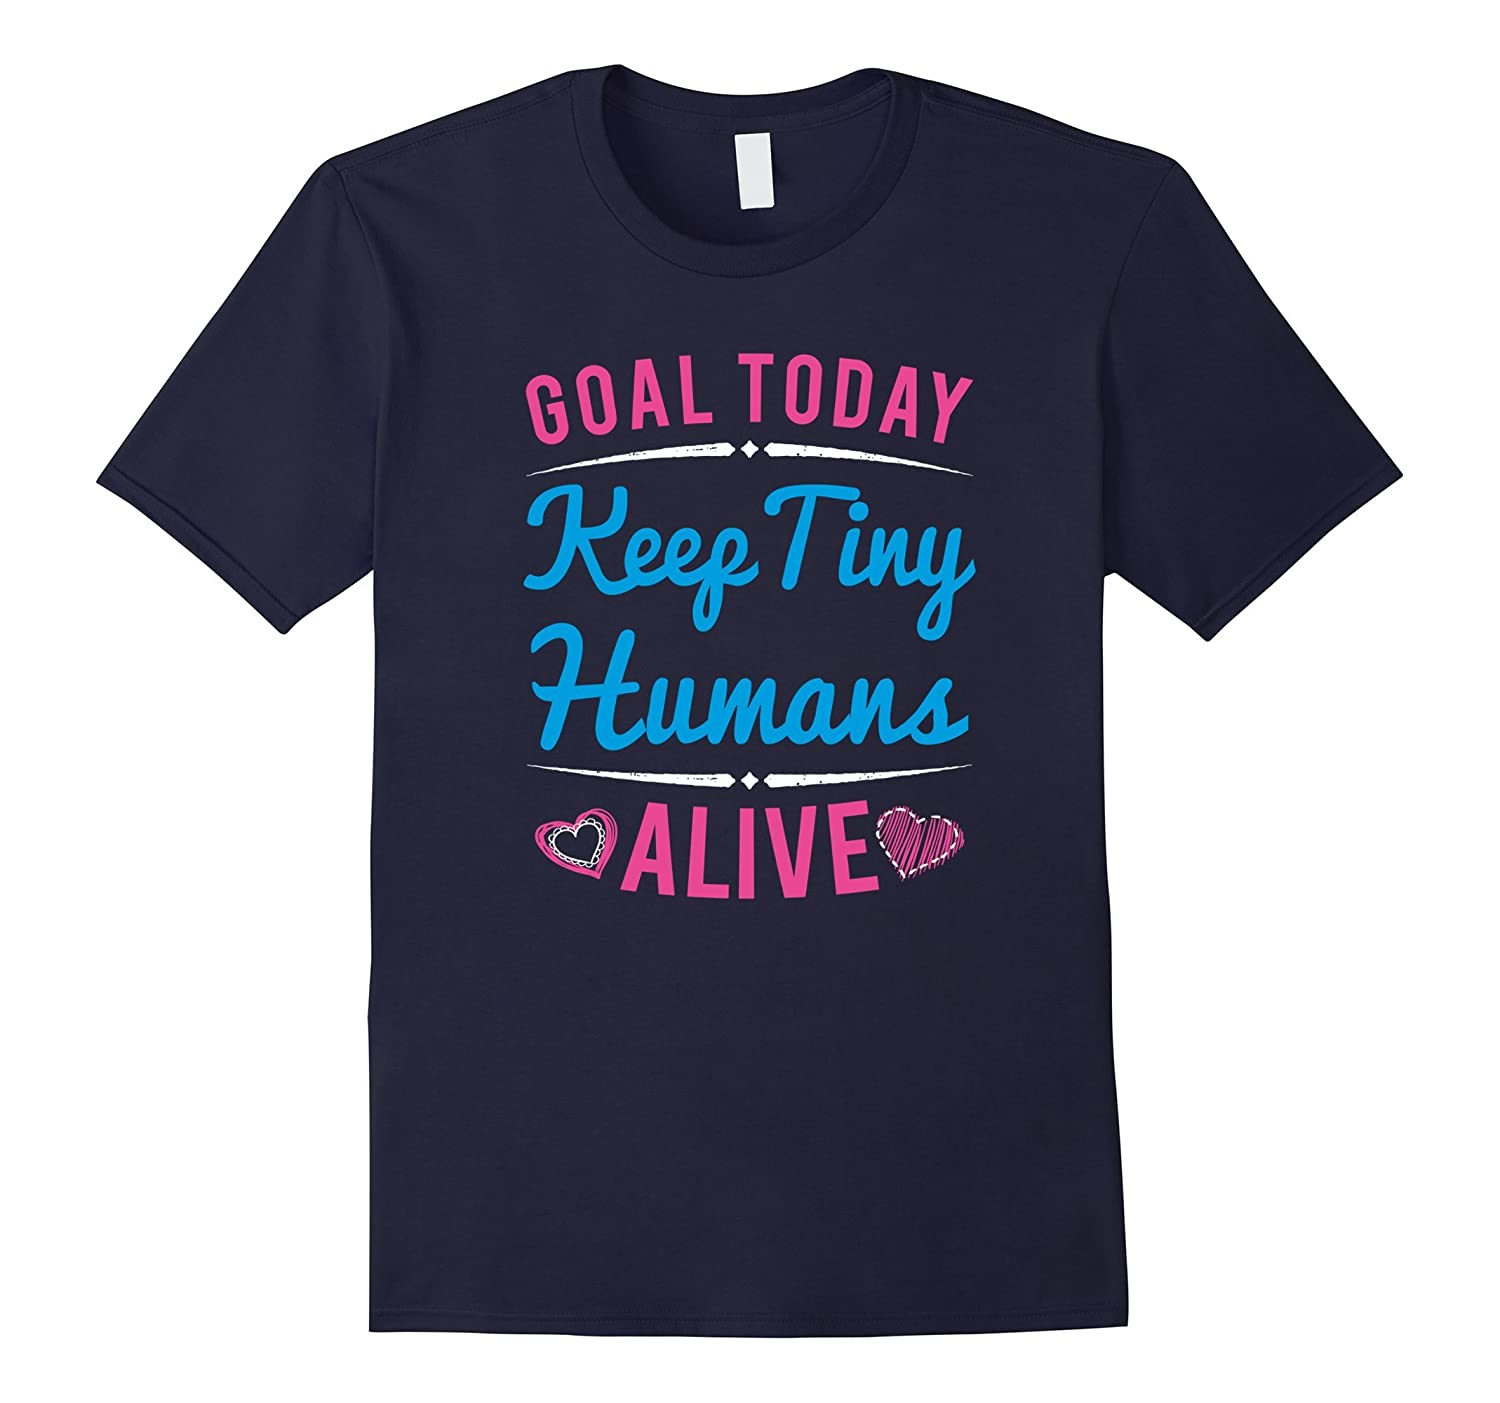 Goal Today Keep Tiny Humans Alive Funny T-Shirt-CD